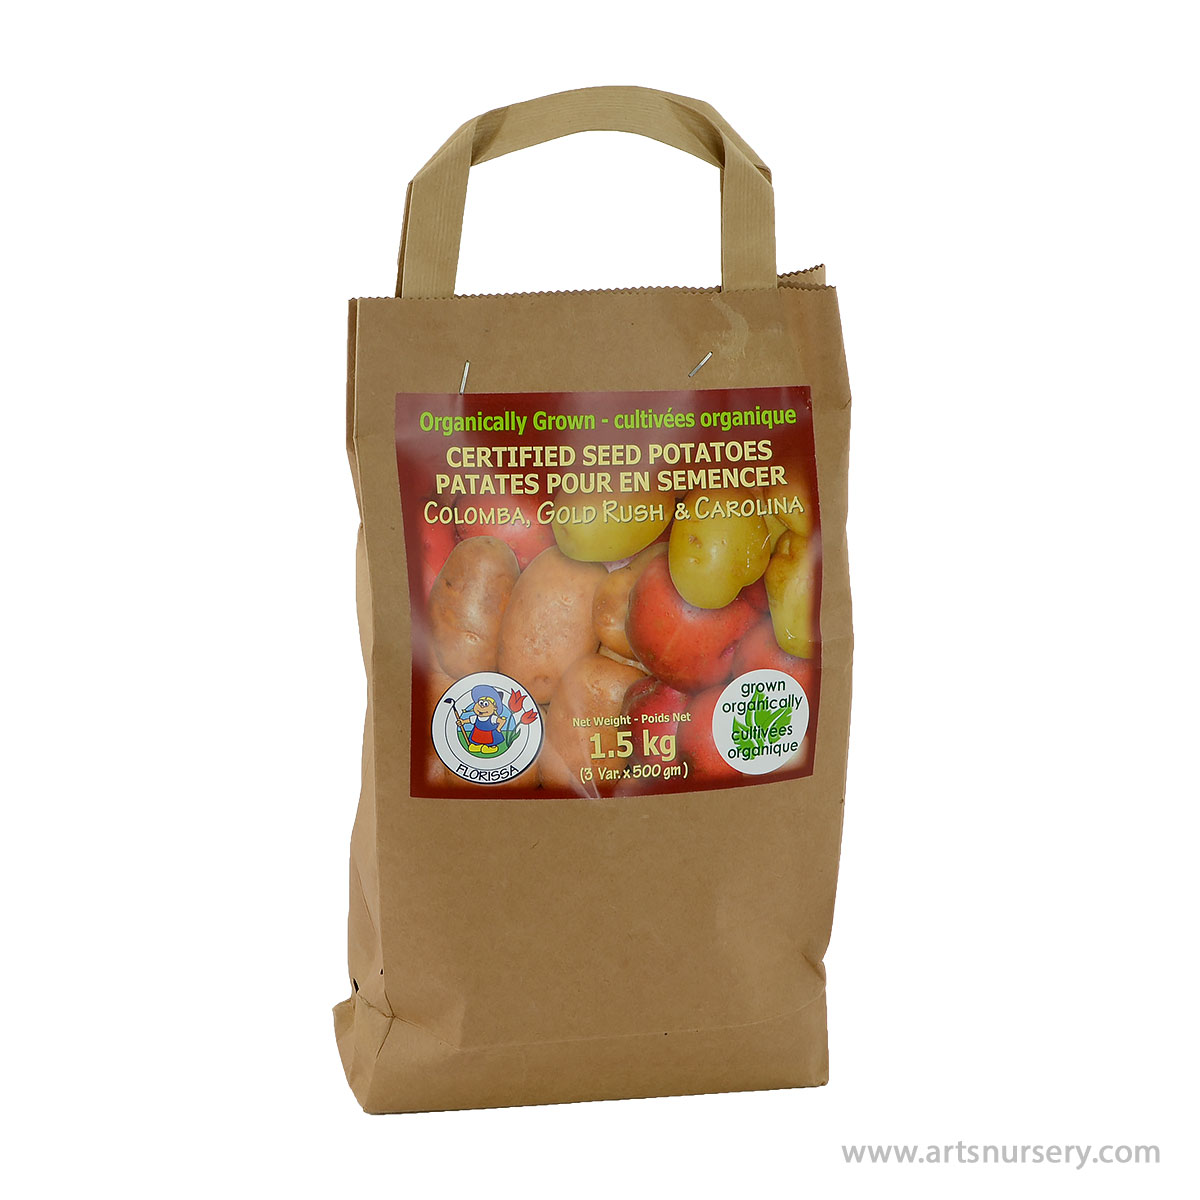 Certified Seed Potato Kit Colomba Gold Rush Carolina